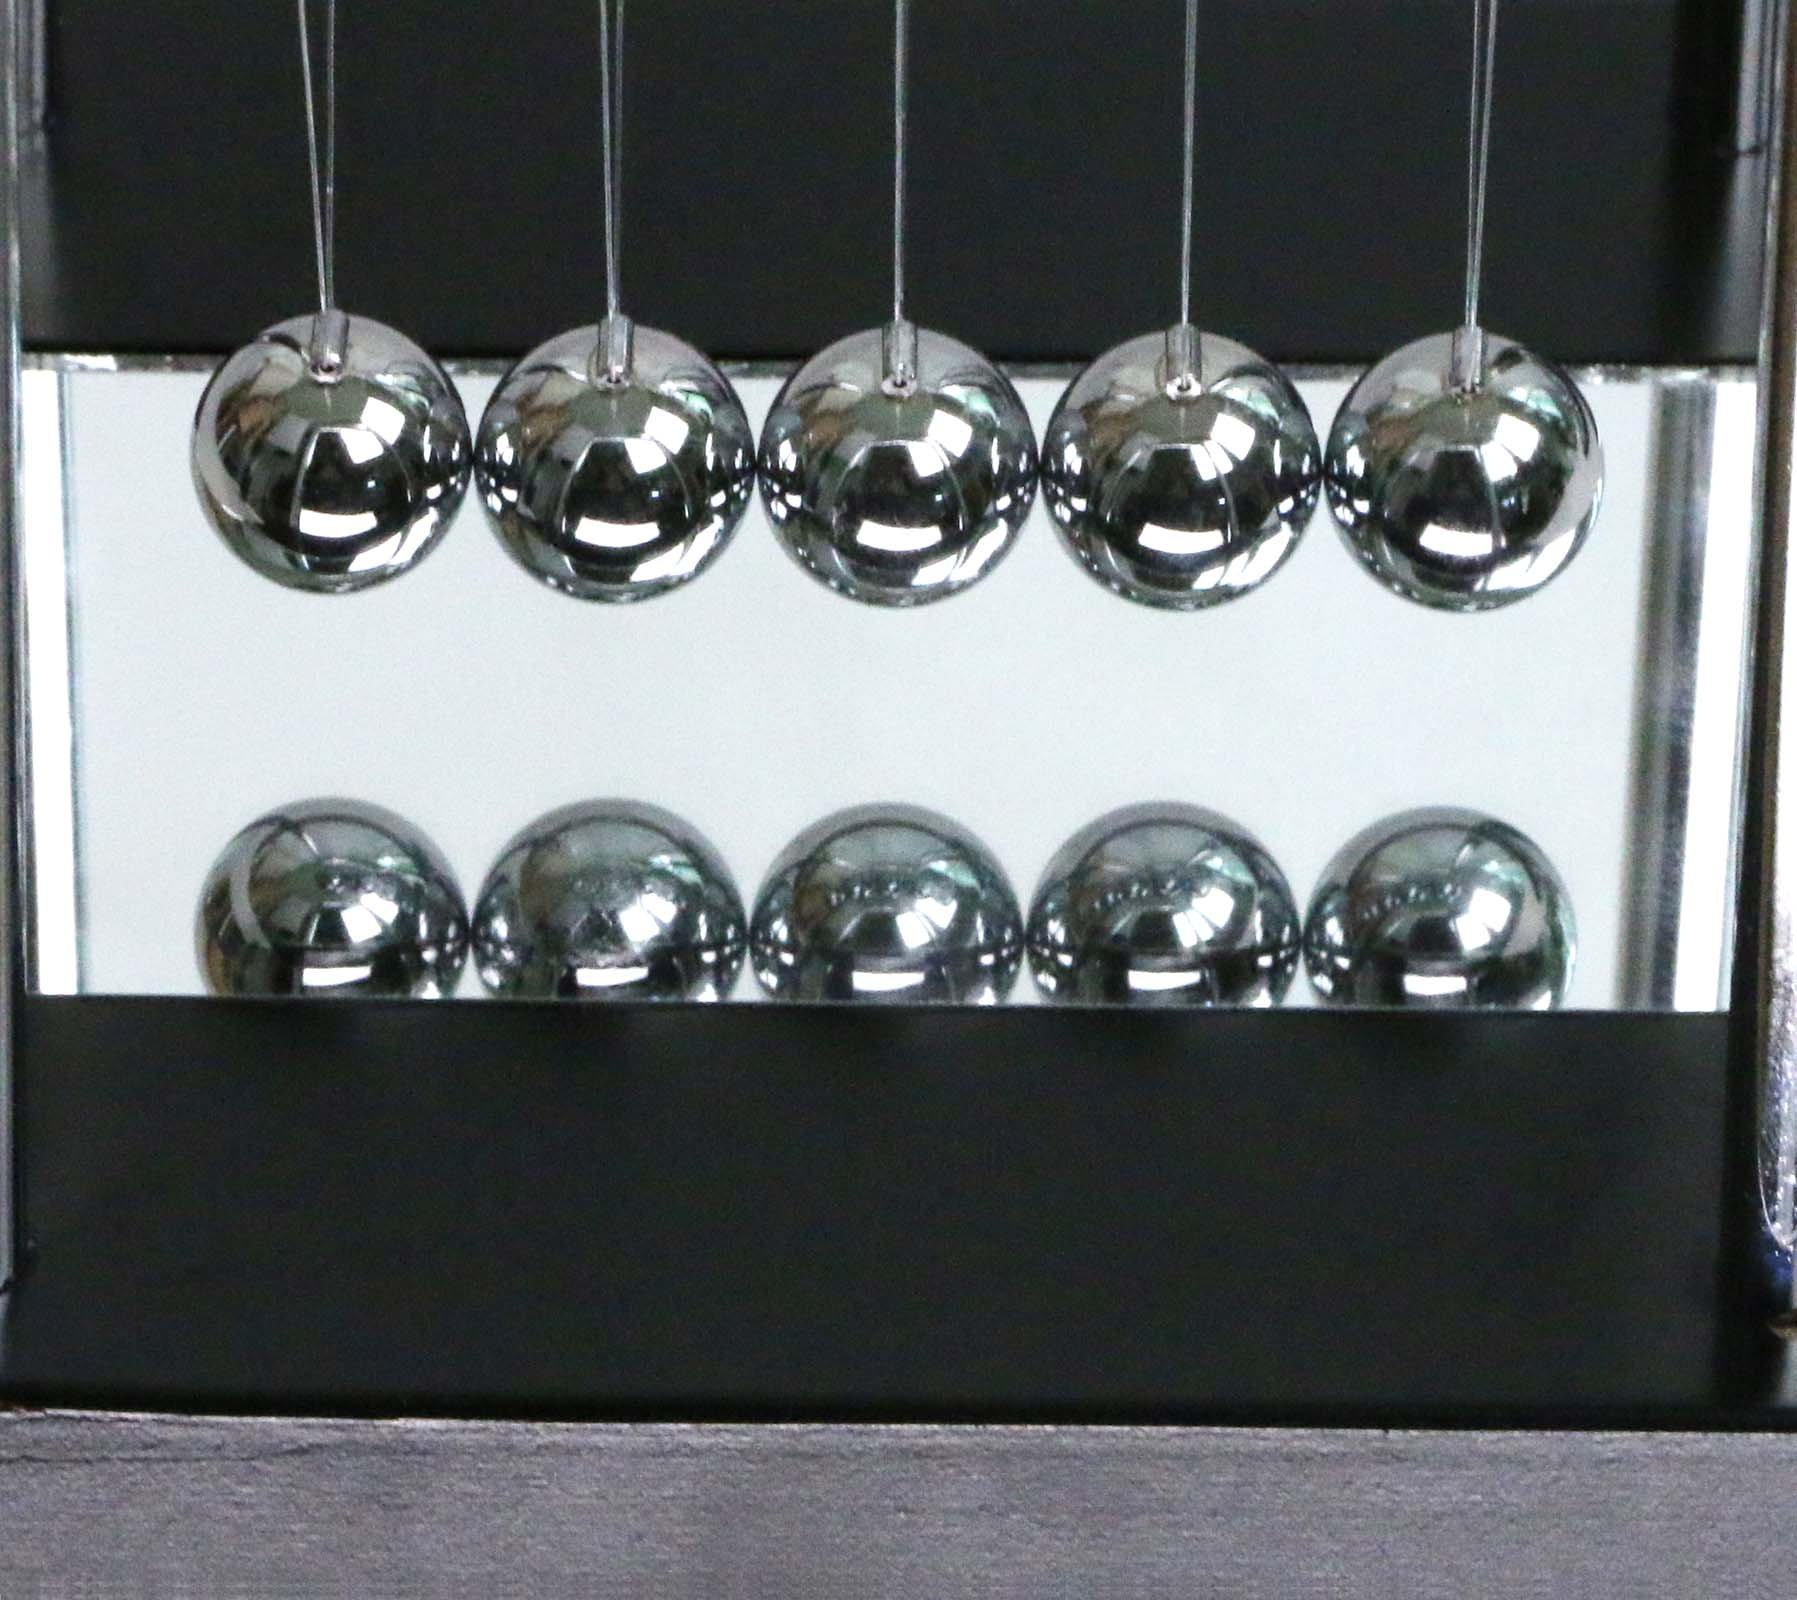 BOJIN Mirror Newton's Cradle Balance Ball Science Kinetic Energy Sculpture - Medium Mirror by BOJIN (Image #5)